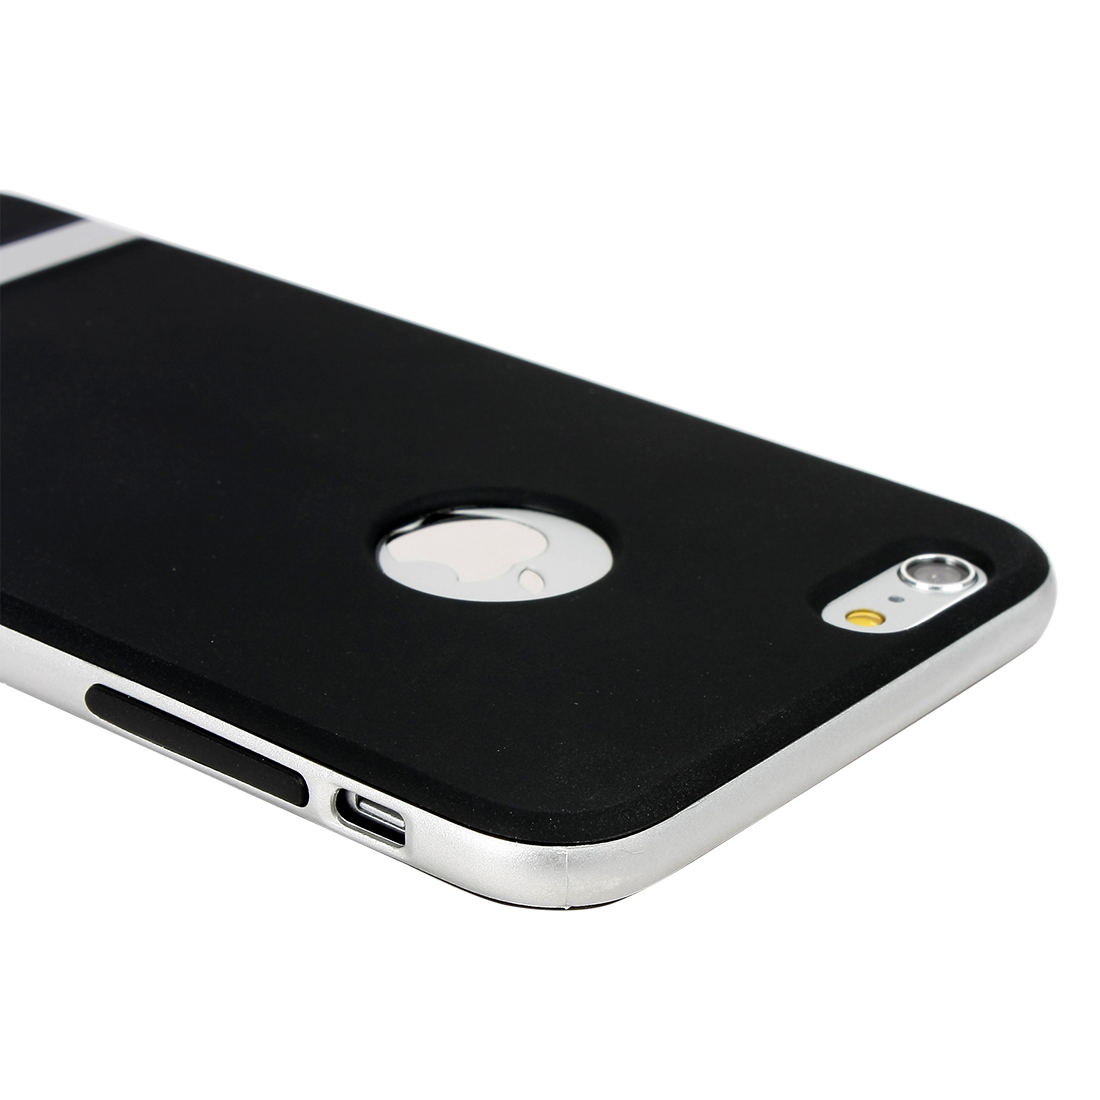 Silver Hybrid Shockproof Hard Bumper Soft Case Cover For iPhone 6